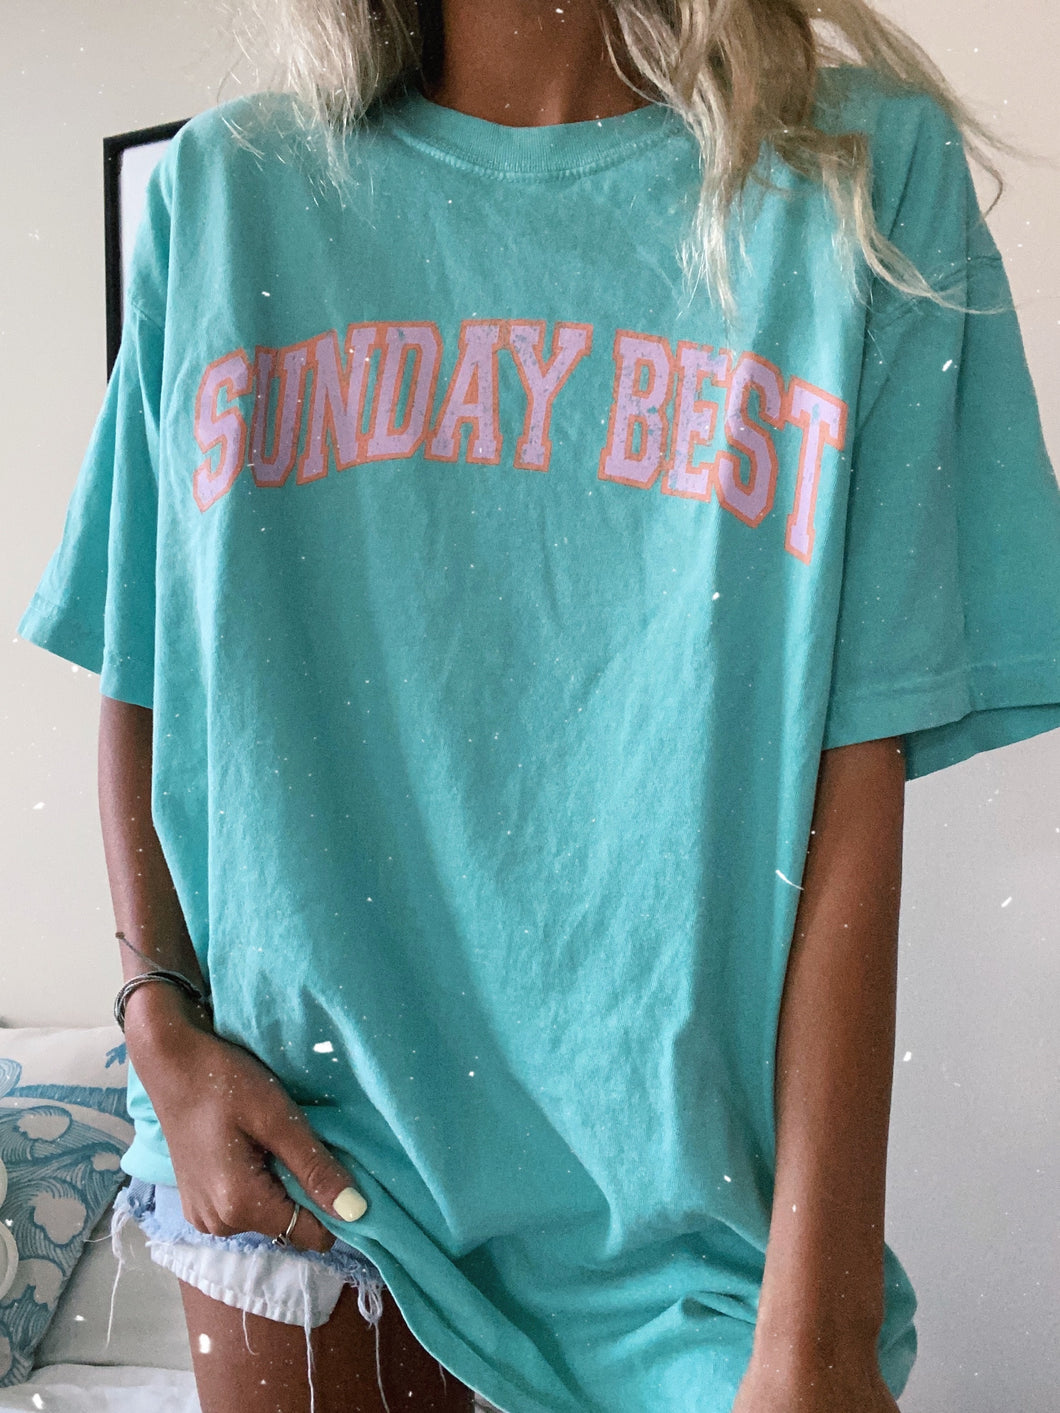 SUNDAY BEST TEE